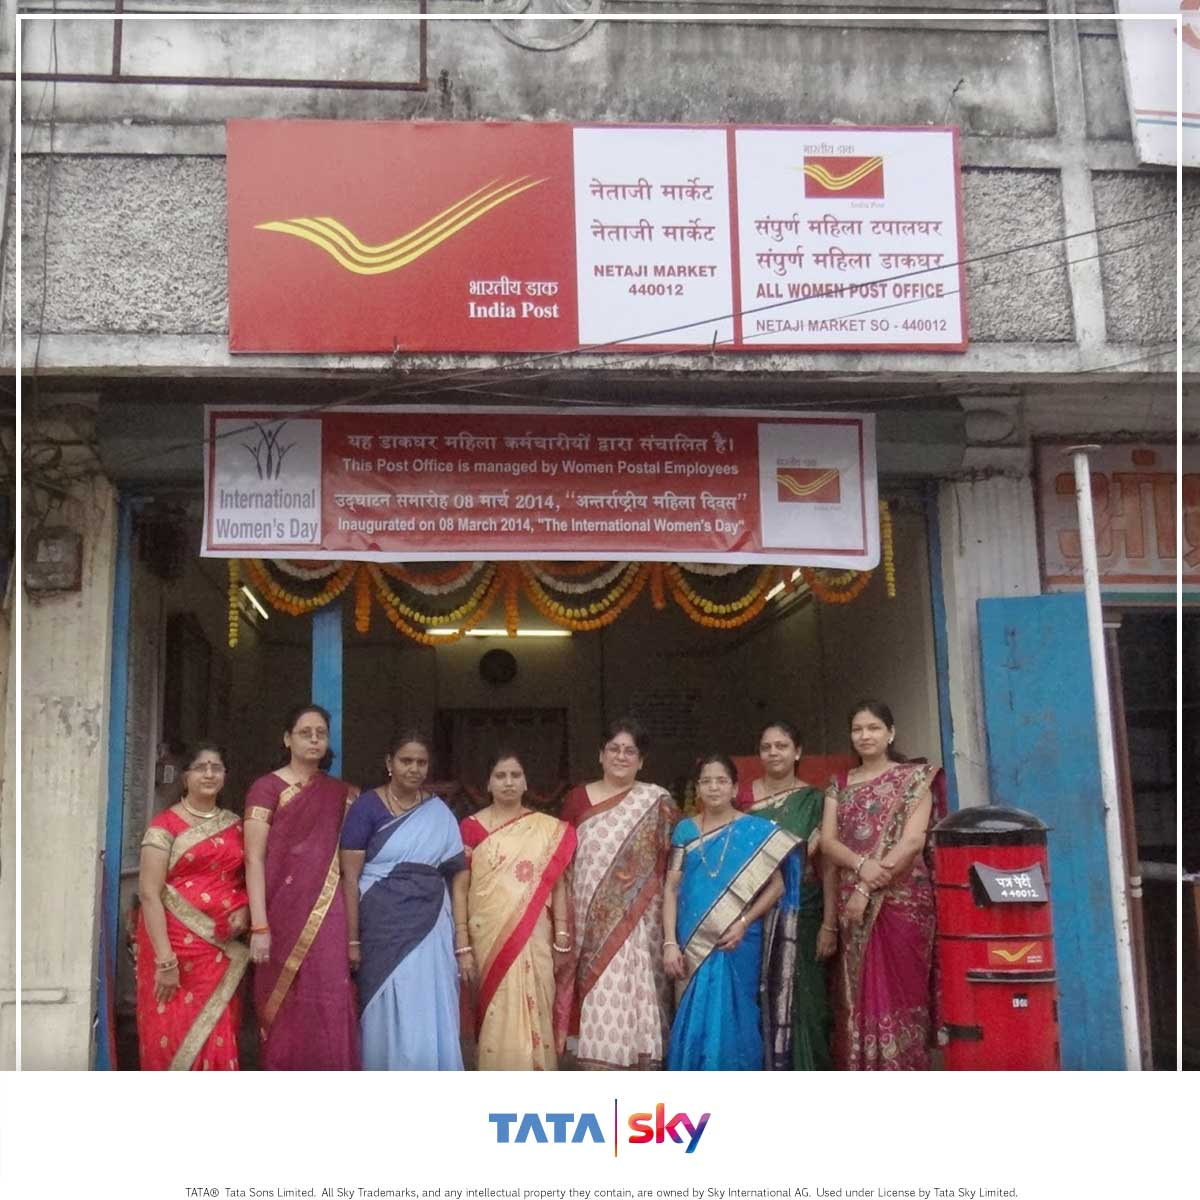 Tata Sky Blogbuster - Indian Women Post Office employees